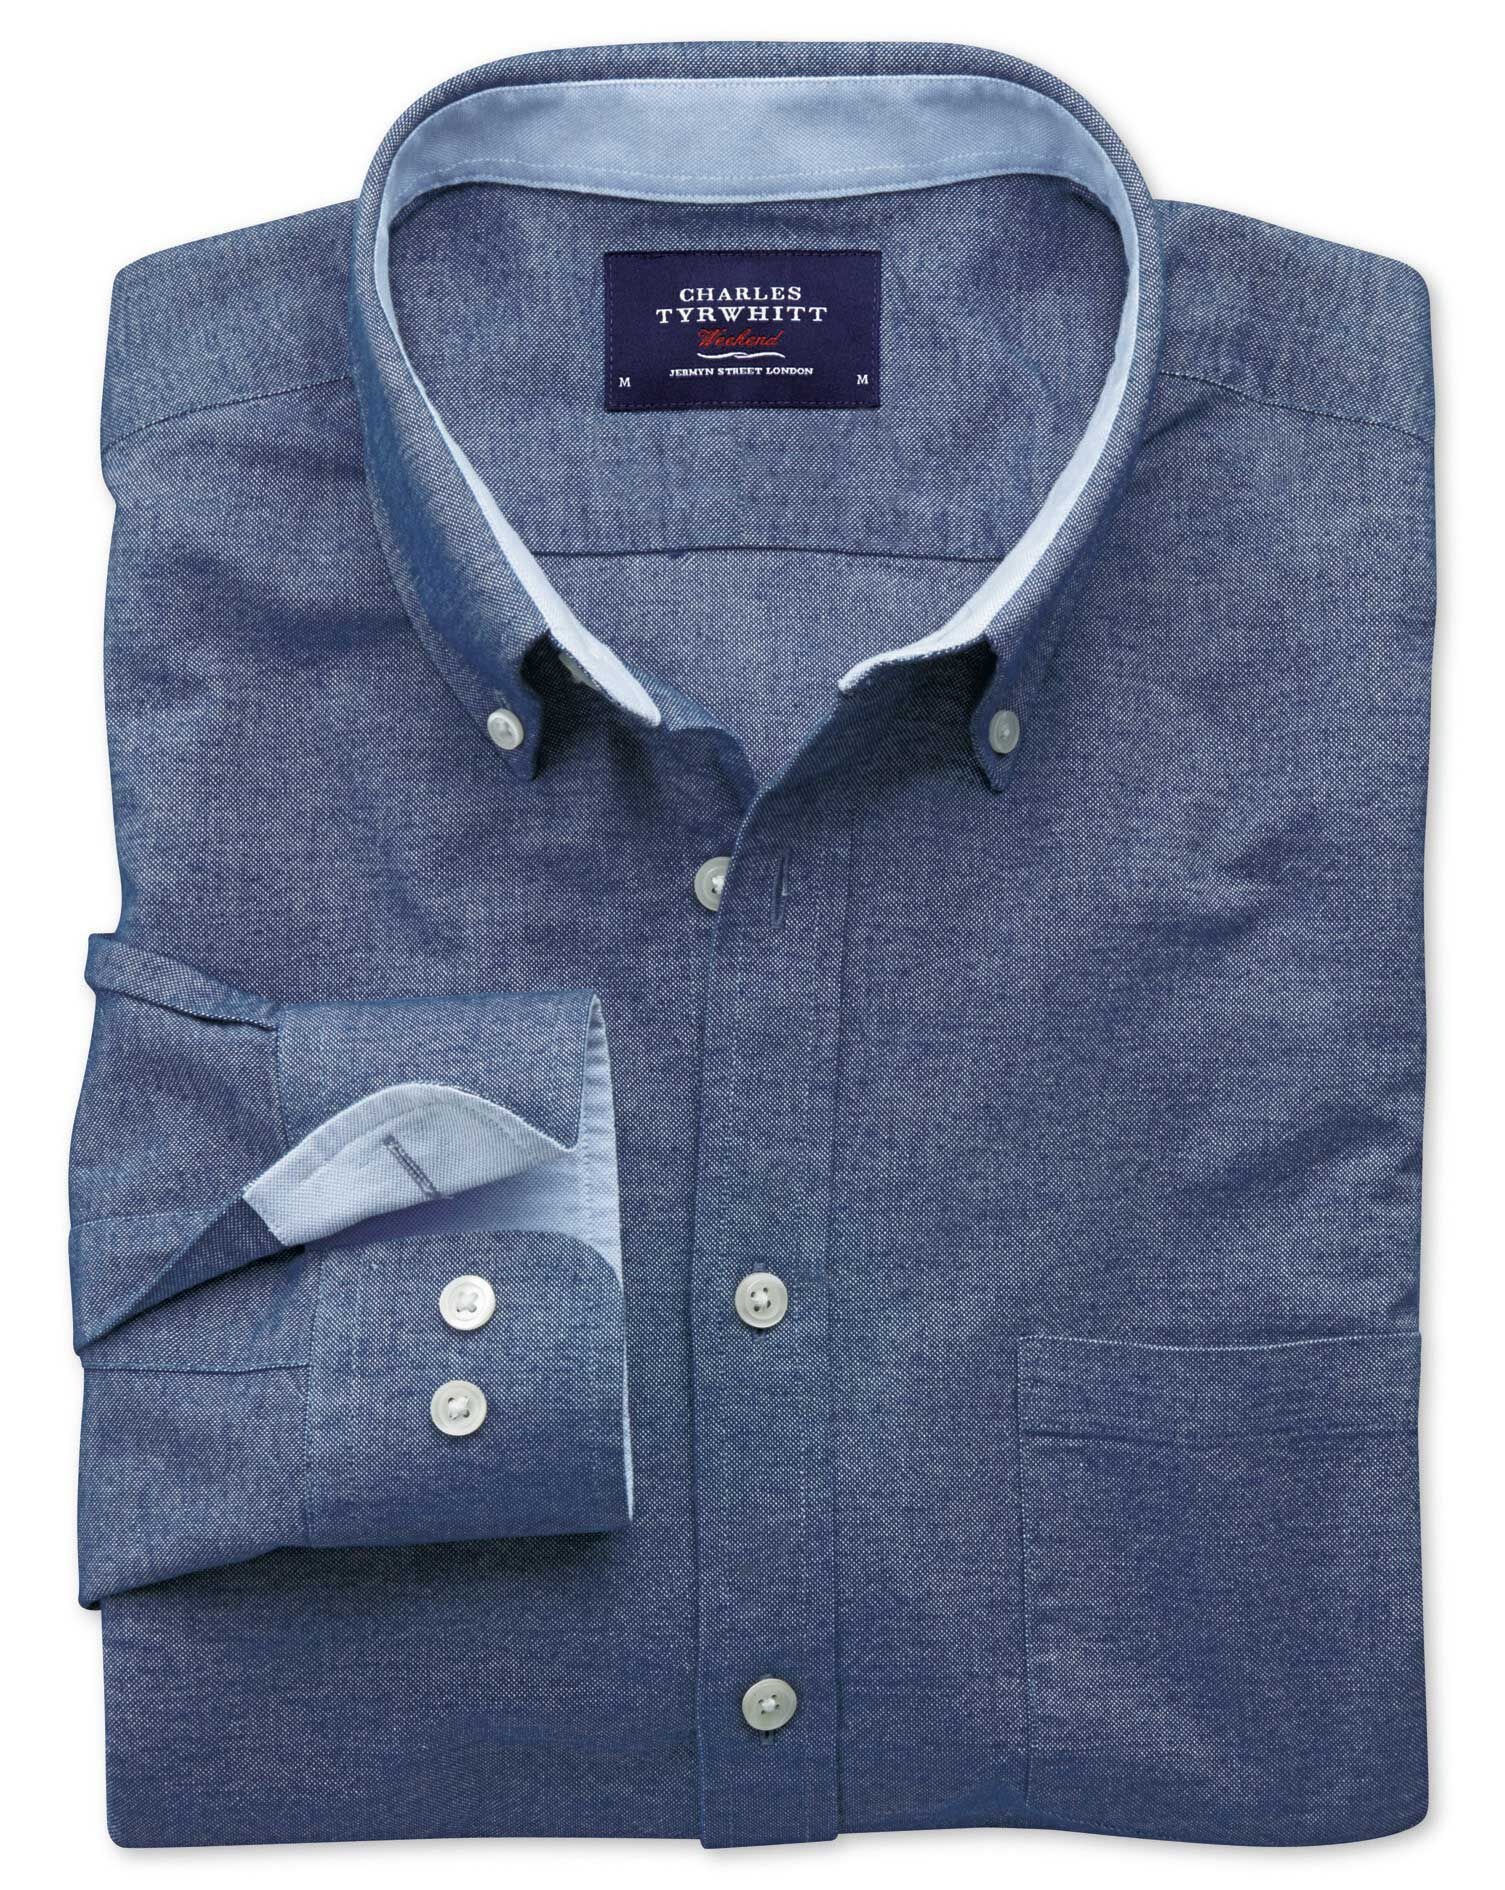 Classic Fit Blue Washed Oxford Cotton Shirt Single Cuff Size XXXL by Charles Tyrwhitt